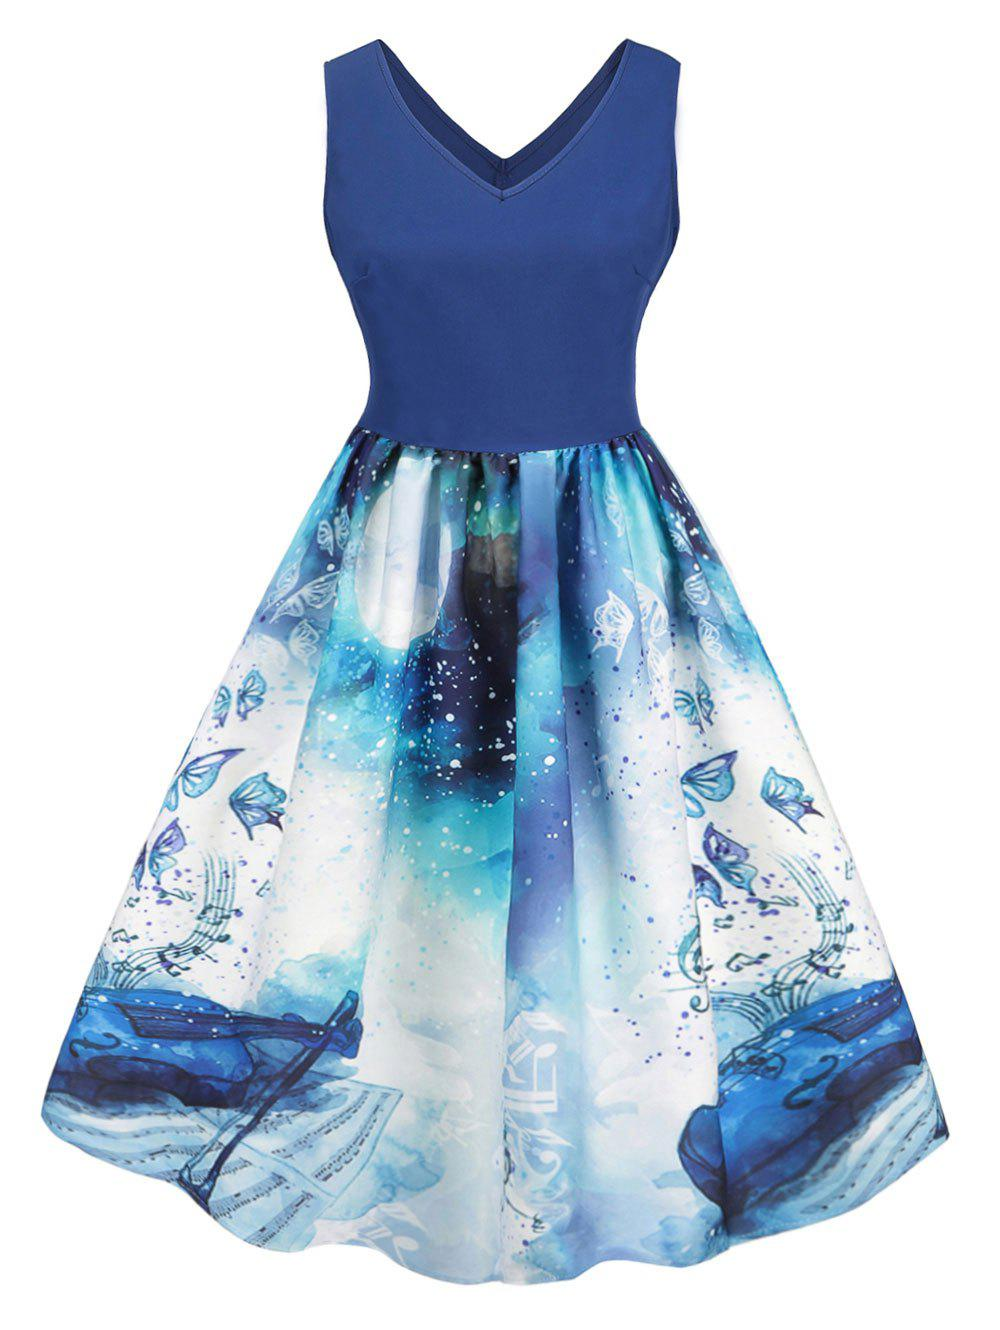 Fashion Plus Size Vintage Butterfly Musical Notes Print Swing Dress